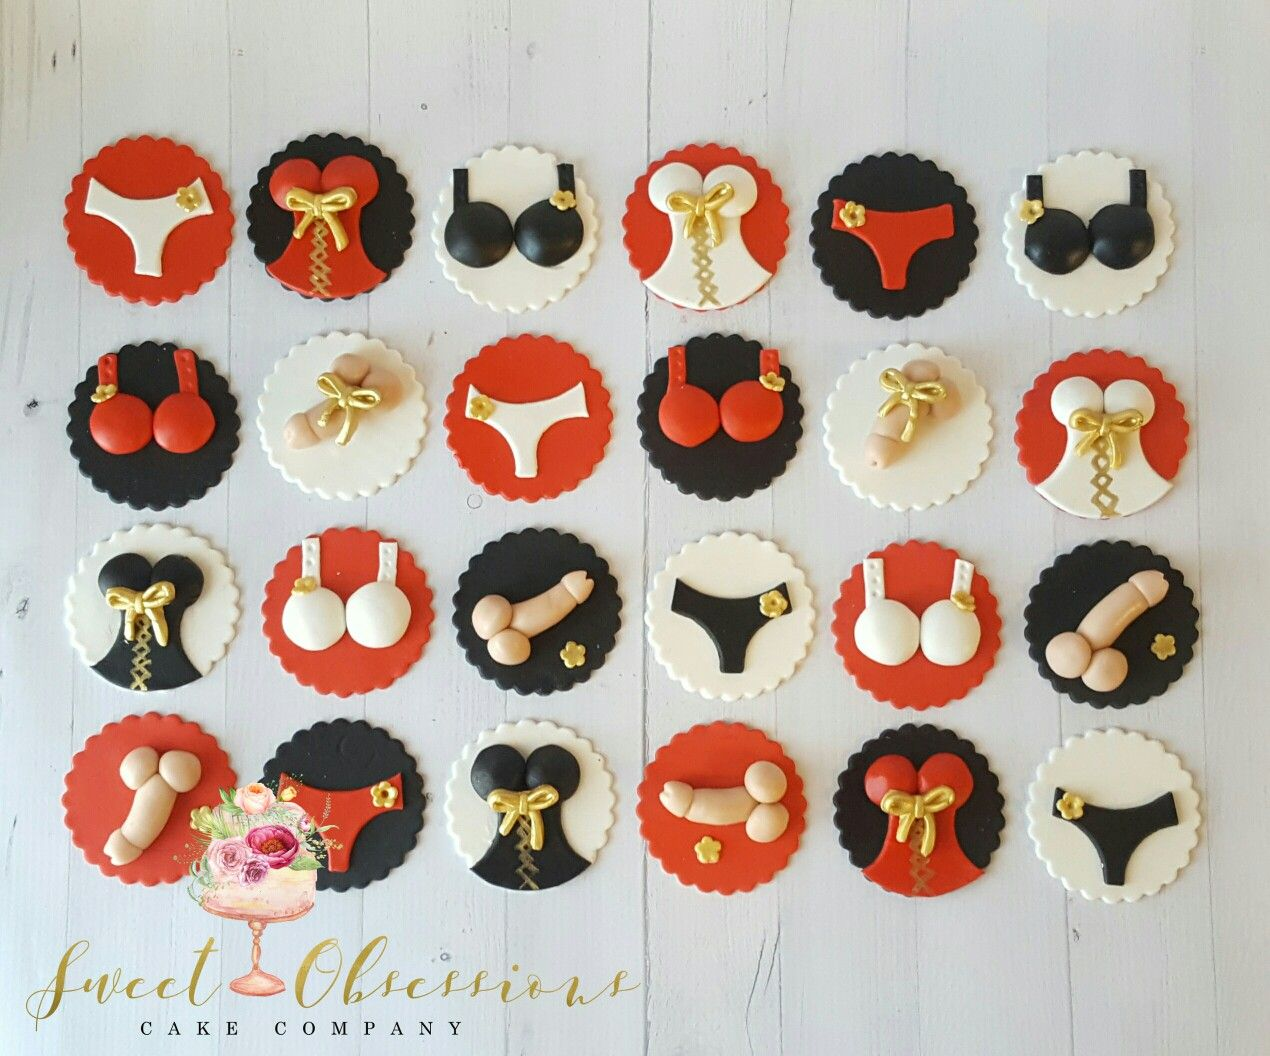 Bachelorette Cupcake Toppers Black Red White Gold Westminster Co Bachelorette Cupcakes Cake Co Sweet